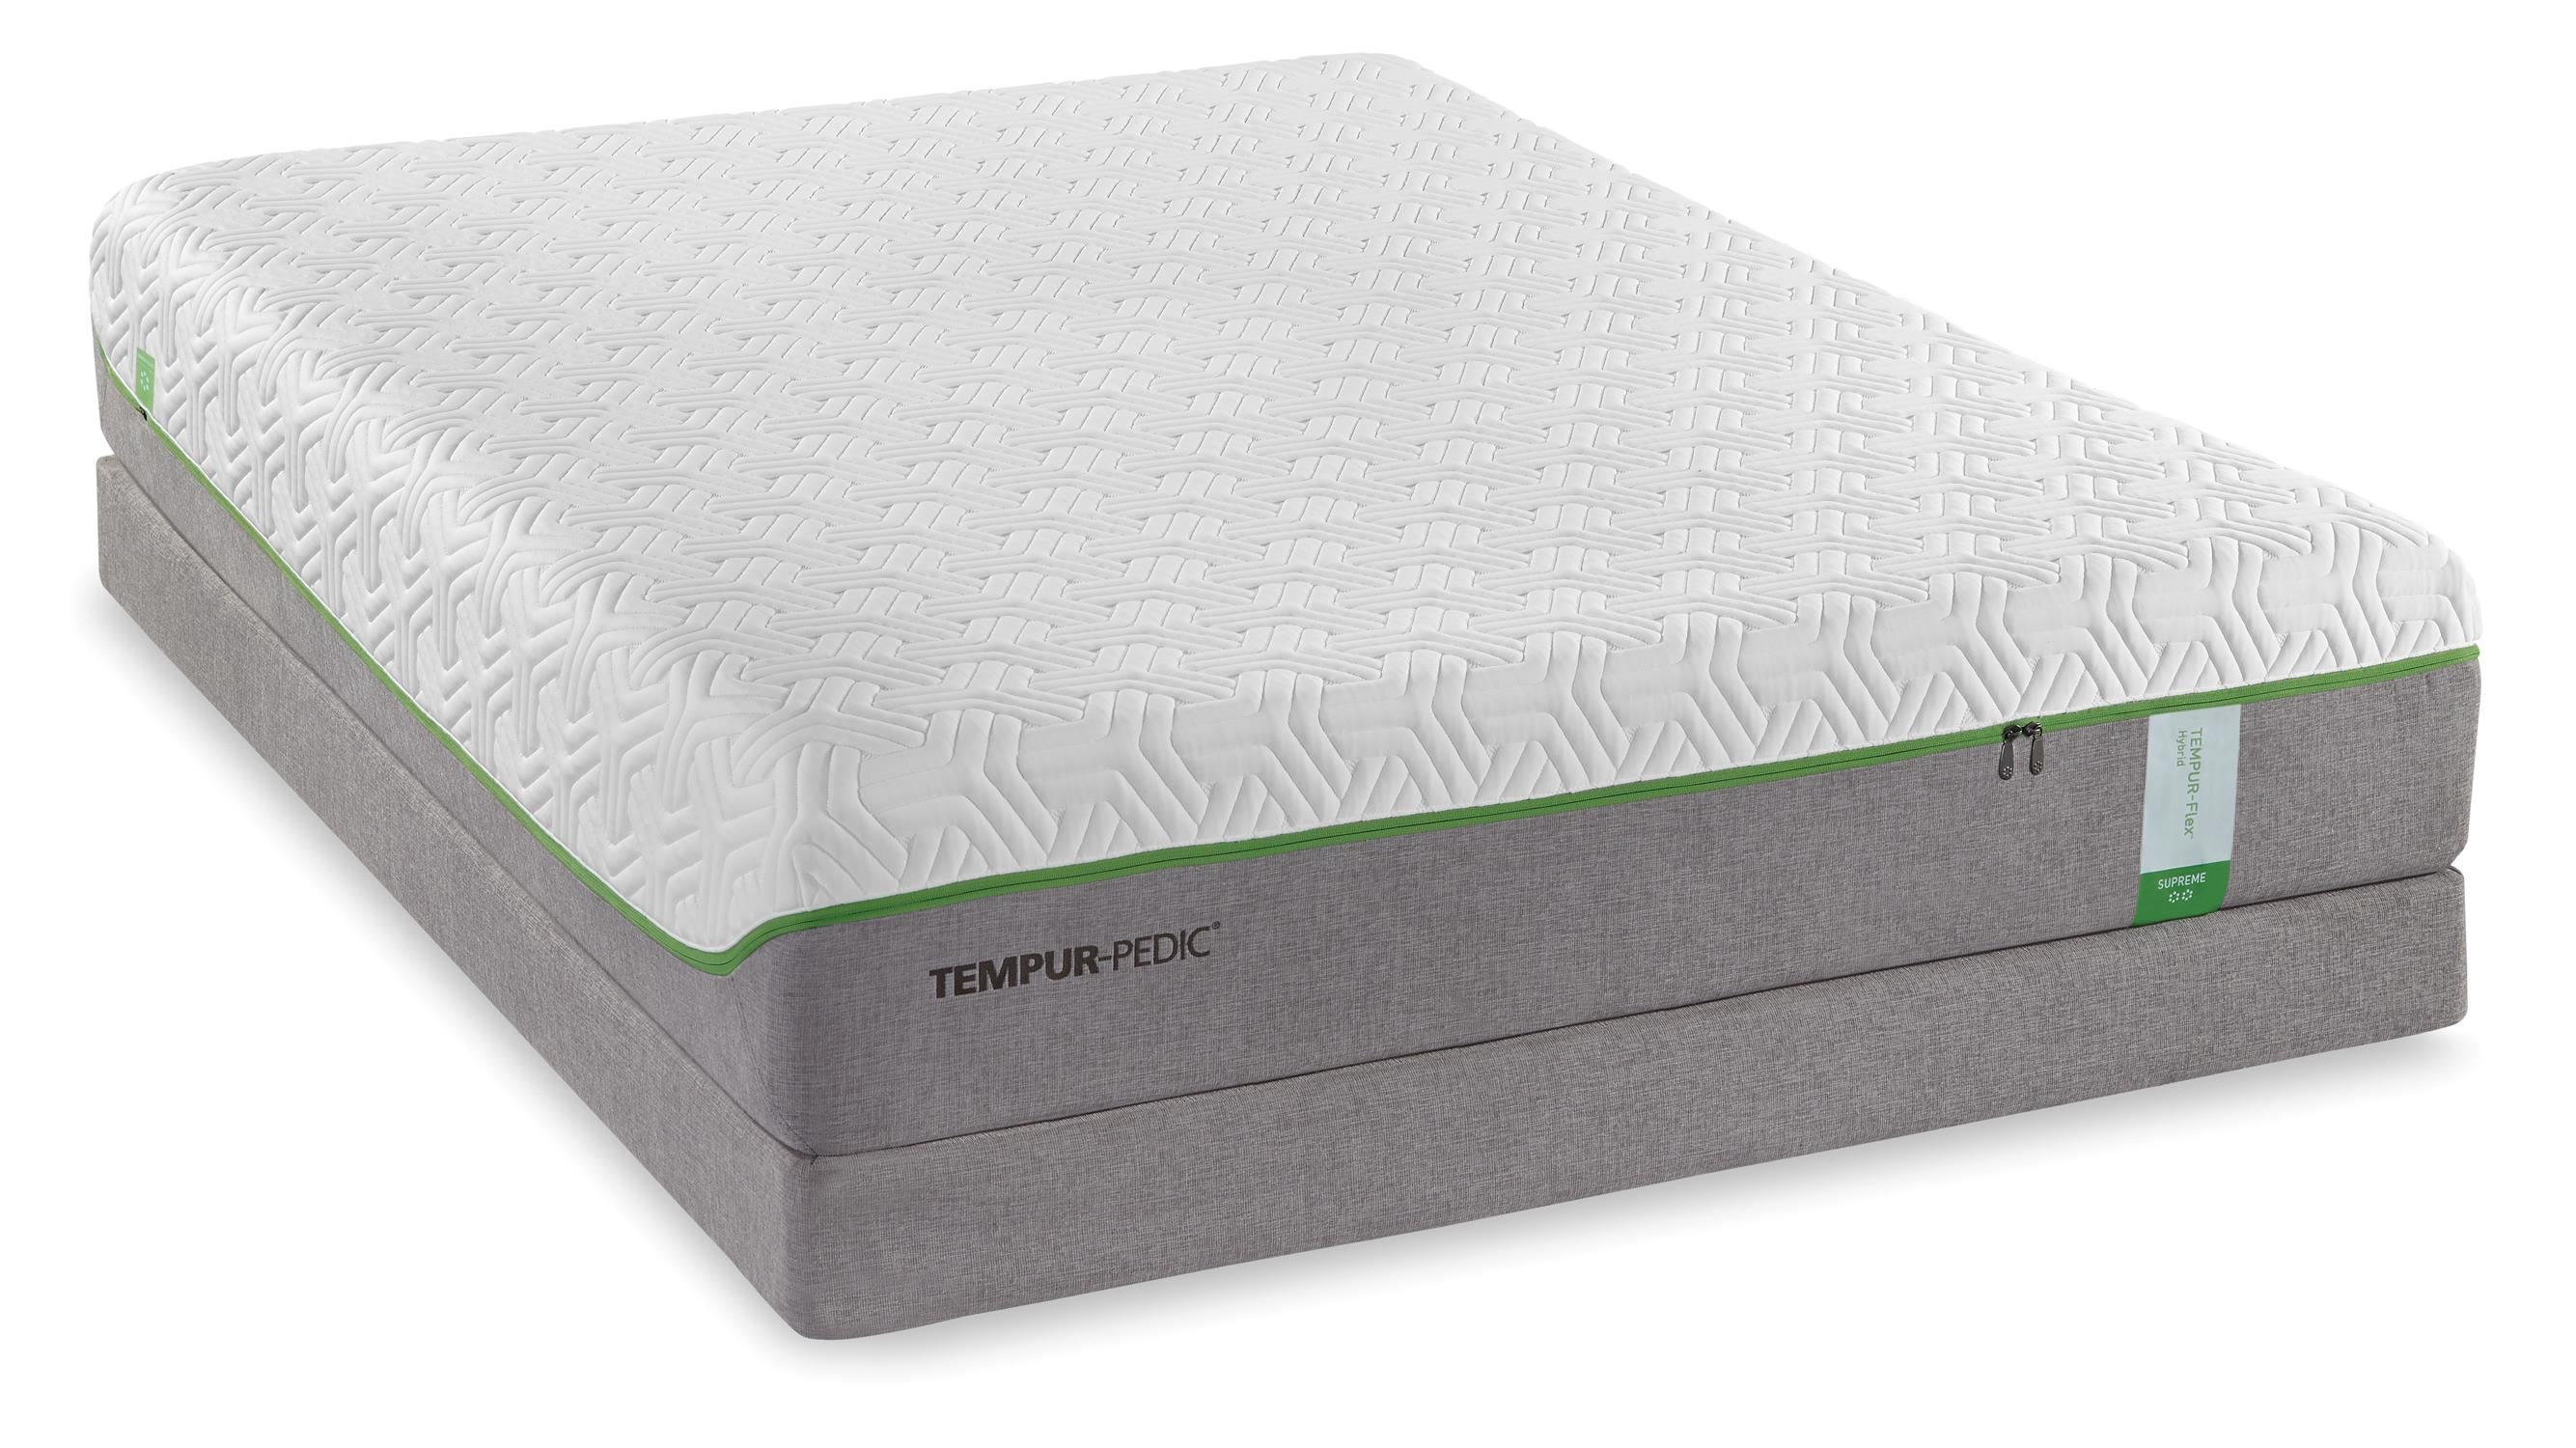 Tempur Pedic Tempur Flex Supreme Twin Extra Long Medium Plush Mattress And Tempur Flat High